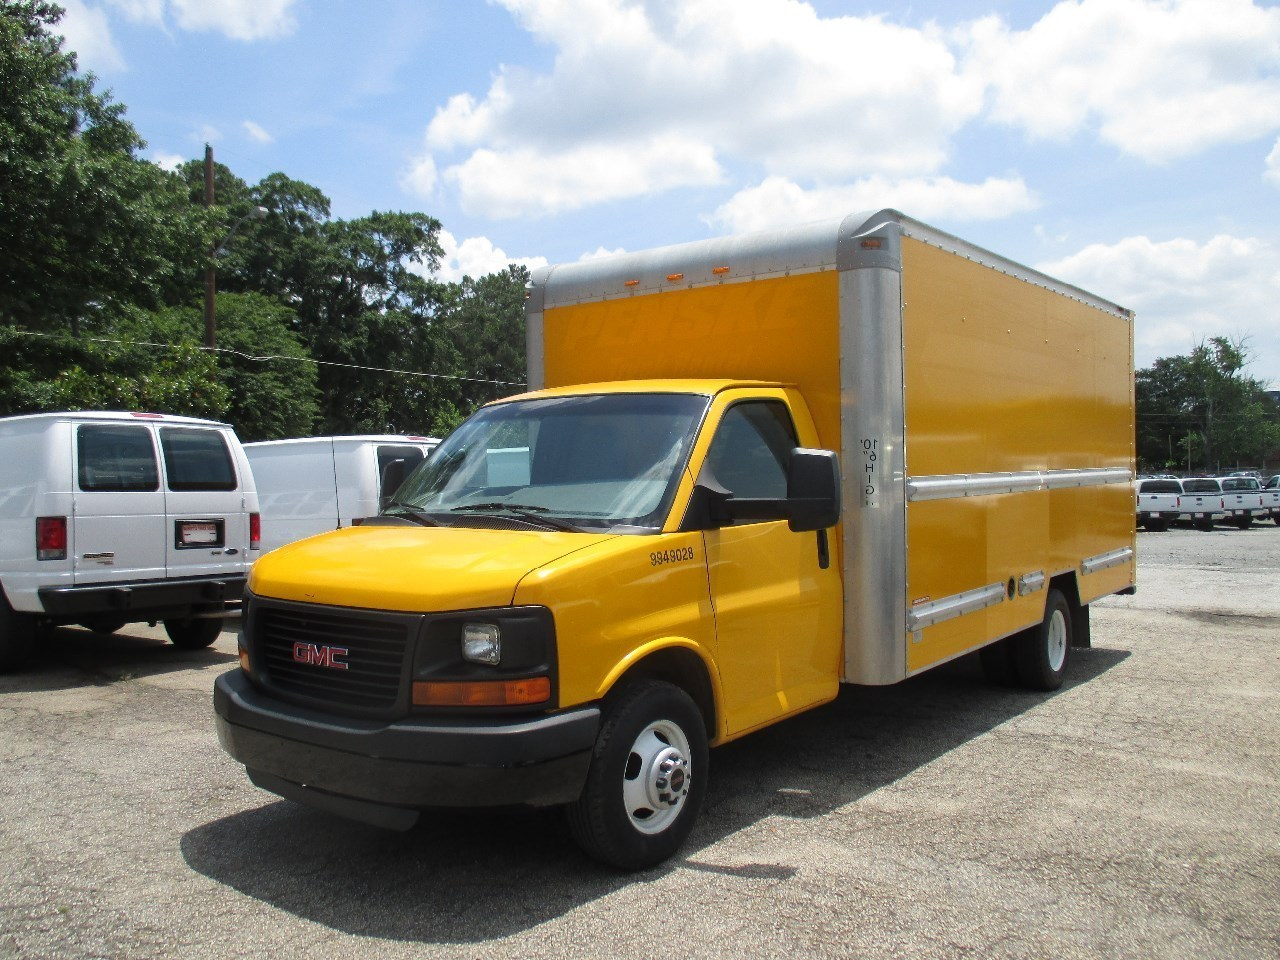 16 Penske Truck Cab Review Texas To Colorado Fuse Box Location Moving